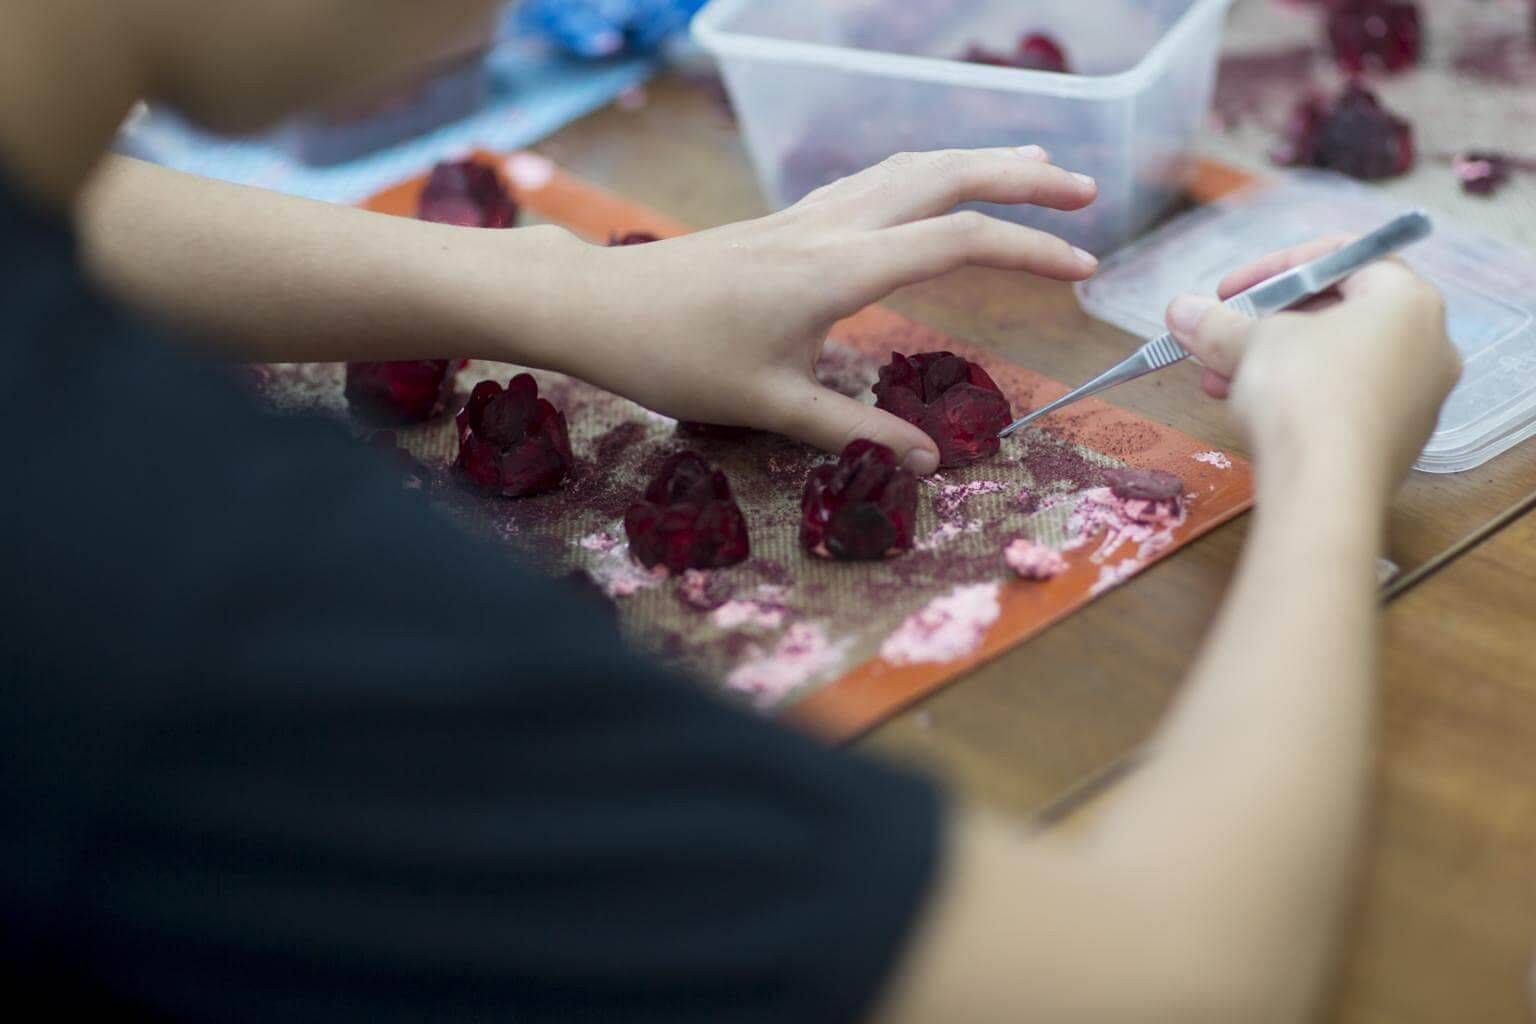 A chef prepares a 'beetroot-rose' dessert inside the research and  development kitchen at Gaggan restaurant in Bangkok, Thailand, on May 5,  2017.